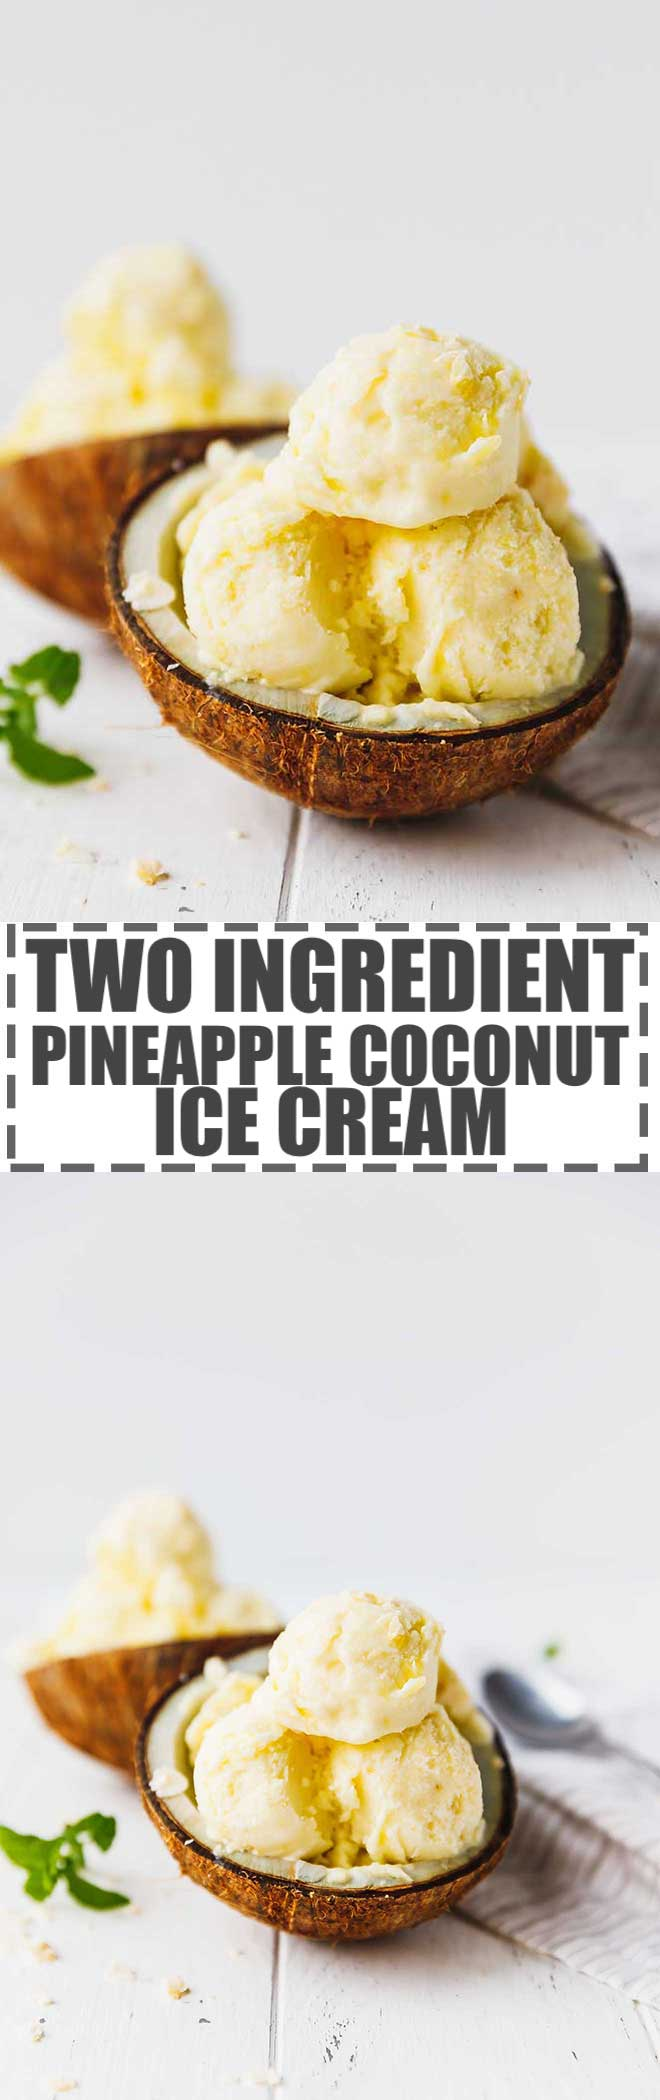 Make the best homemade two-ingredient Pineapple Coconut Ice Cream with full fat canned coconut milk and frozen pineapple chunks in a food processor. Perfect for a quick summer treat.